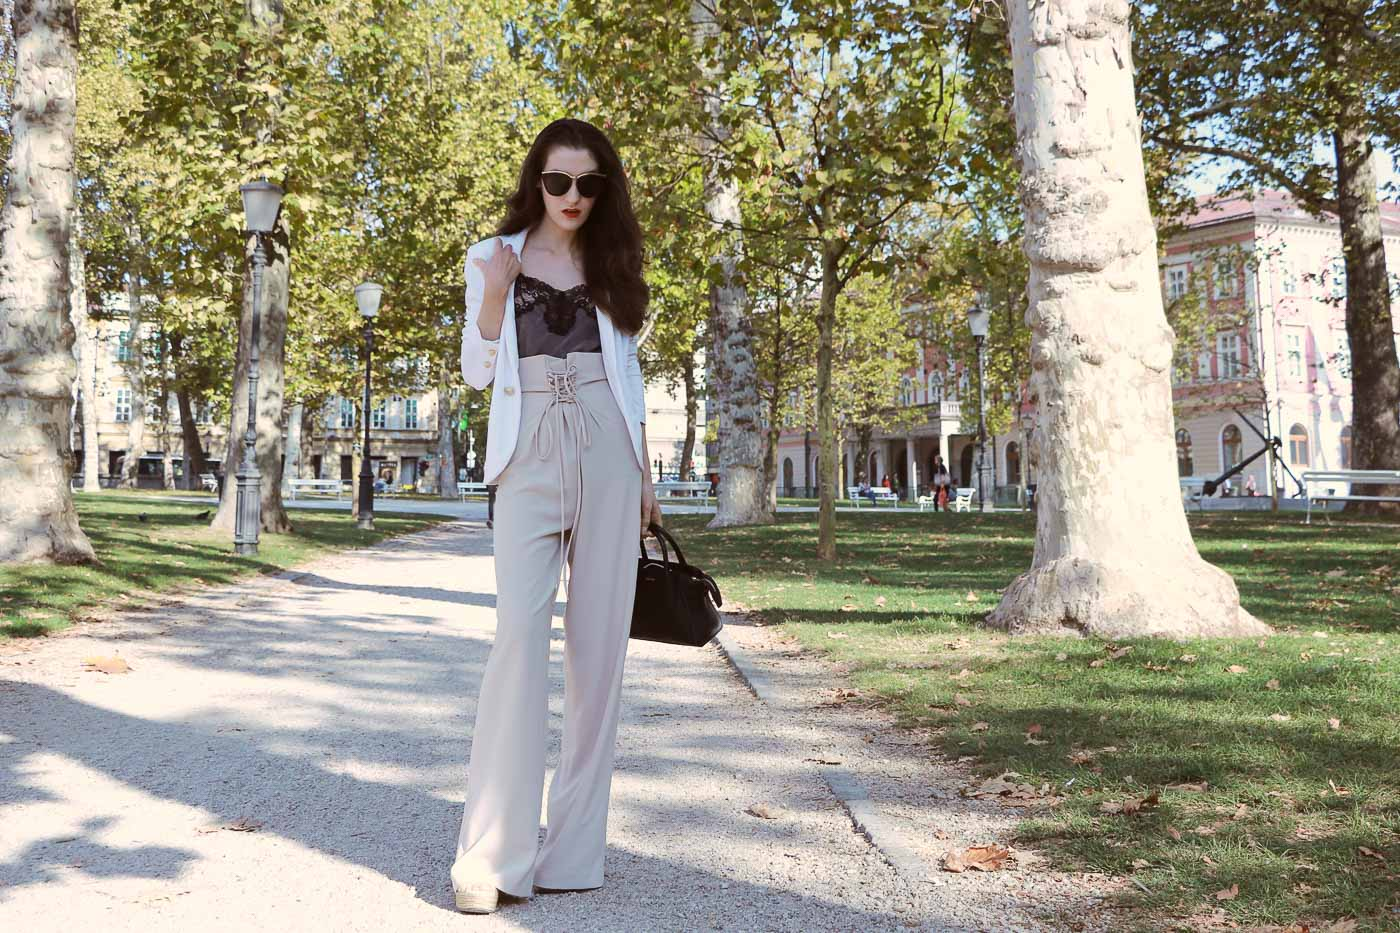 Fashion Blogger Veronika Lipar of Brunette from Wall Street dressed in wide-leg paper bag pants, blazer and small black bag